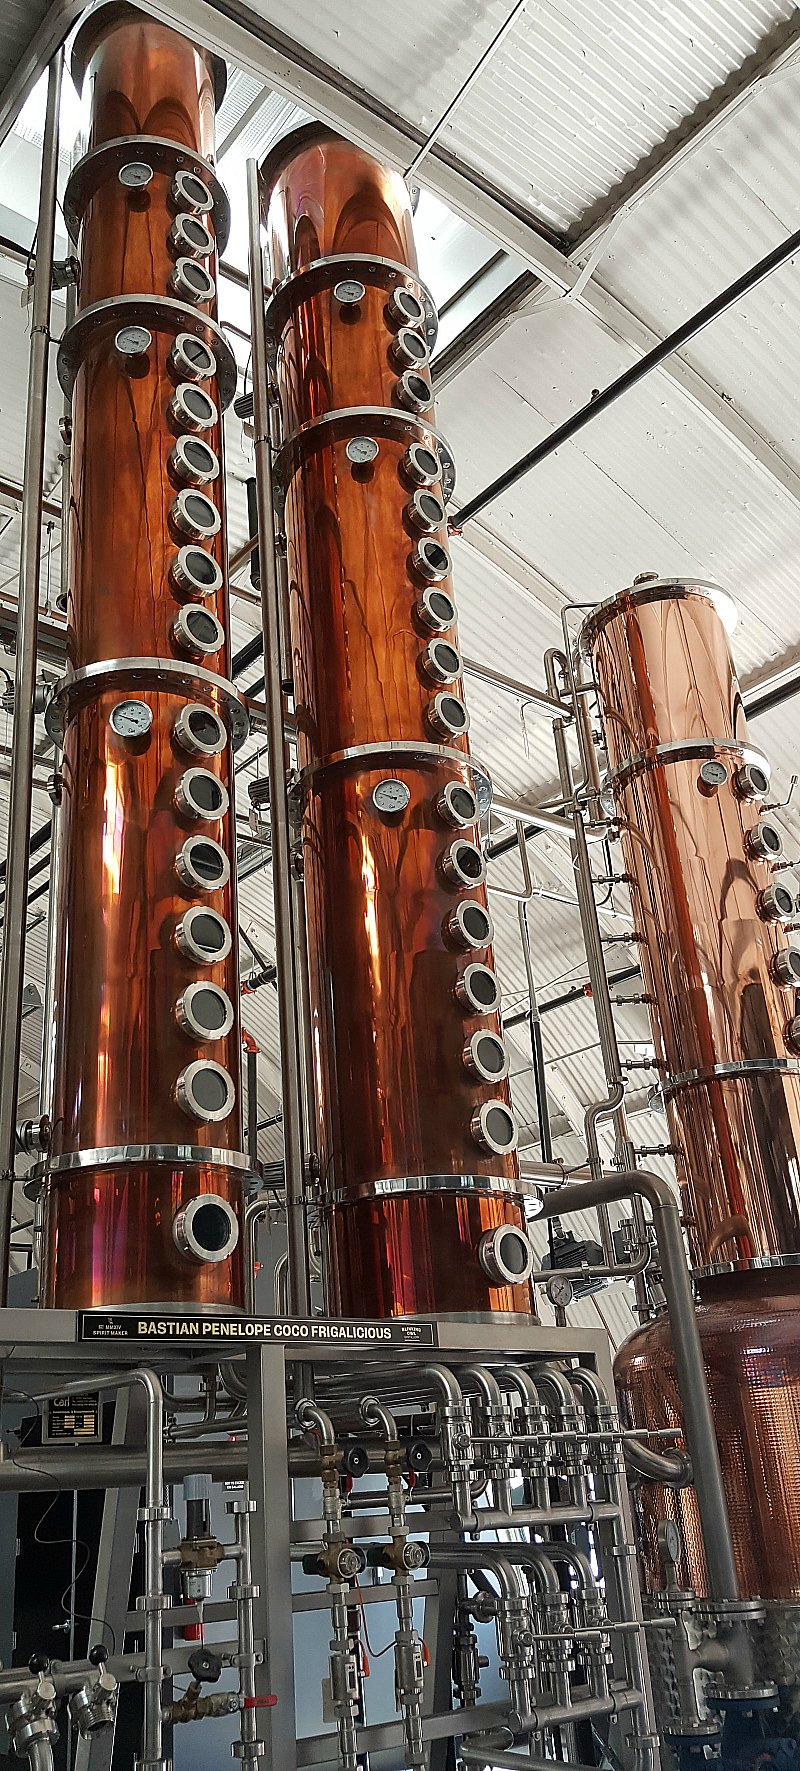 Blinking Owl Distillery in Santa Ana - The first legal distillery in Orange County since prohibition